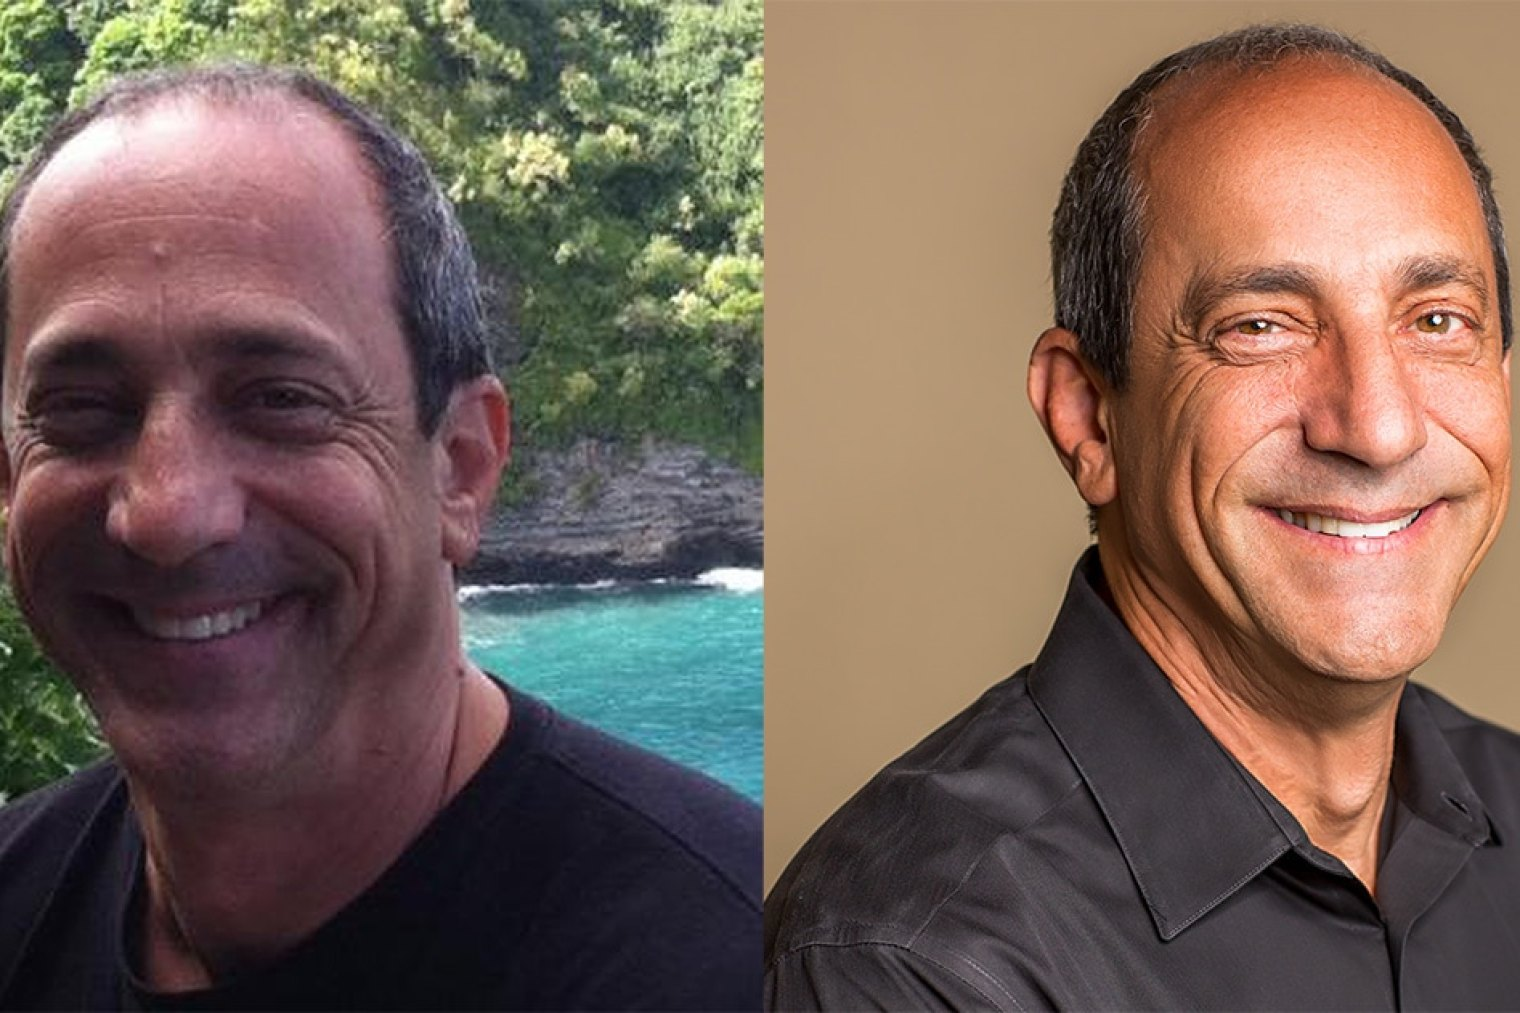 Rob Goldberg's headshot before and after